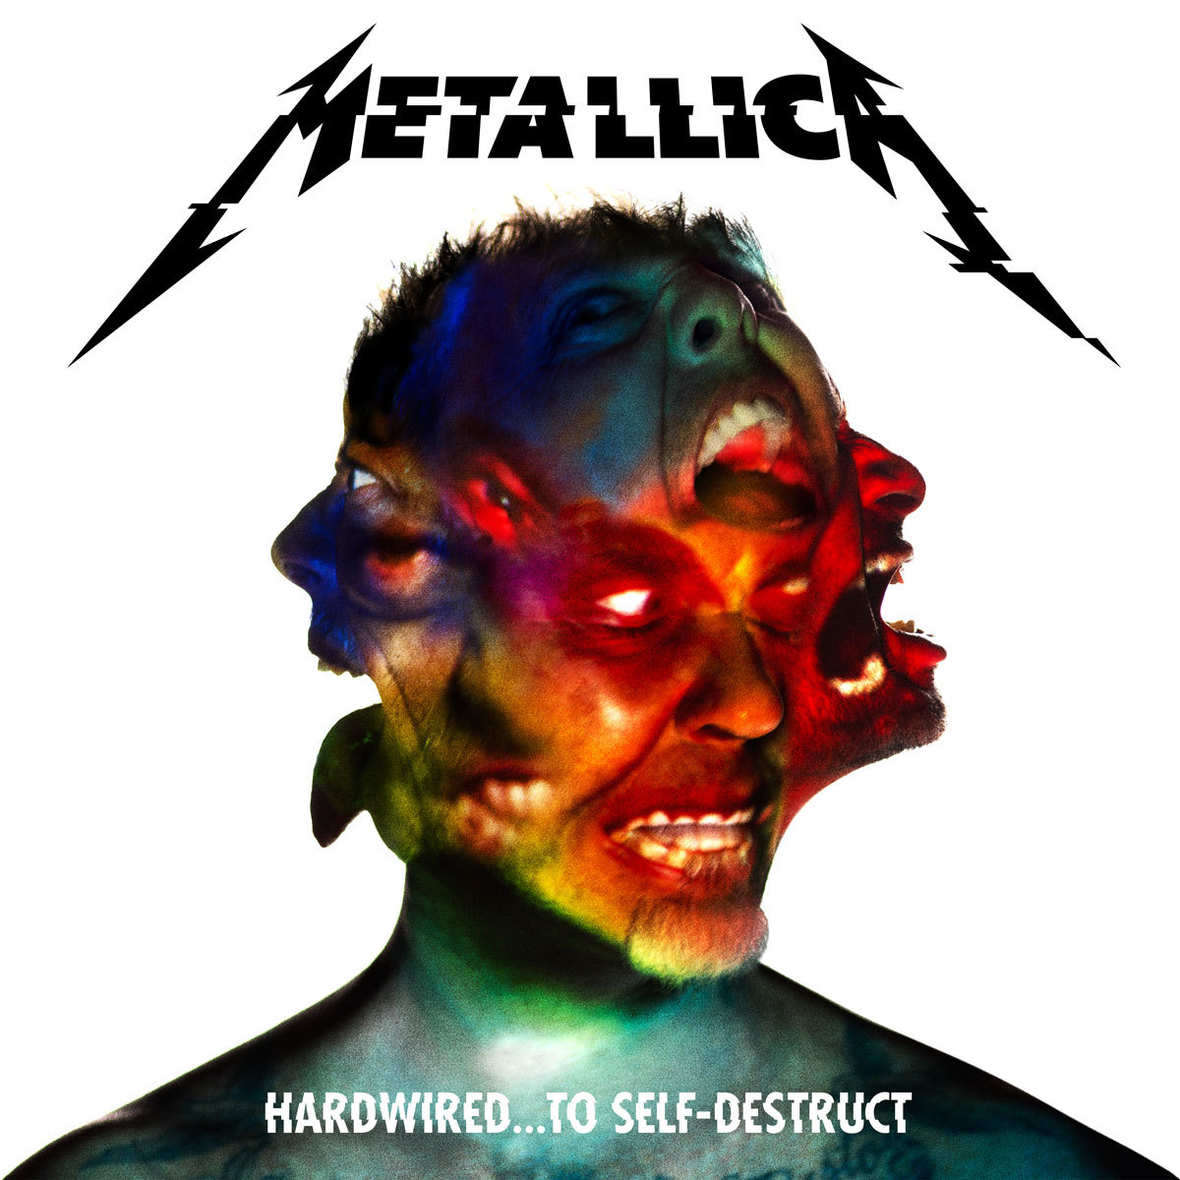 Metallica -  HARDWIRED... TO SELF-DESTRUCT [RECENZJA] - full image